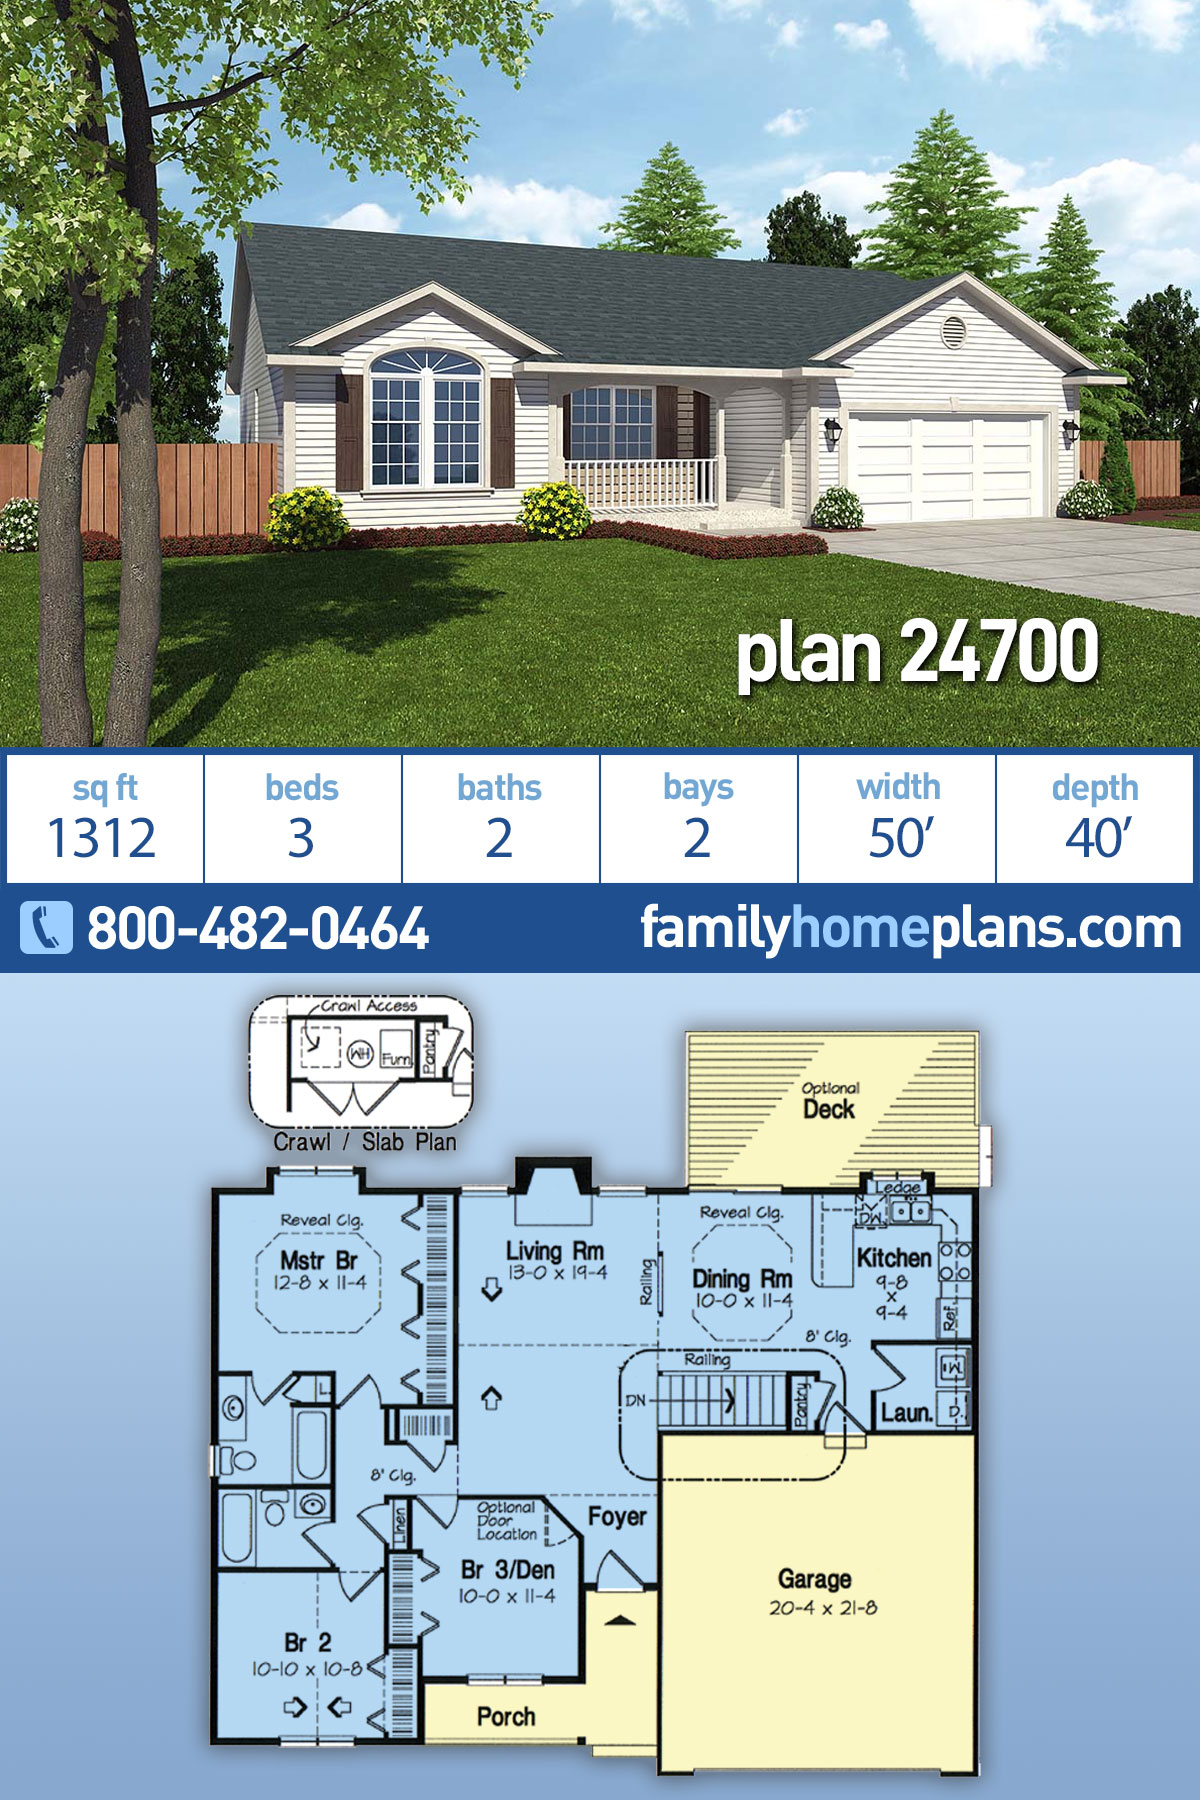 Cottage , Country , Ranch , Southern , Traditional House Plan 24700 with 3 Beds, 2 Baths, 2 Car Garage